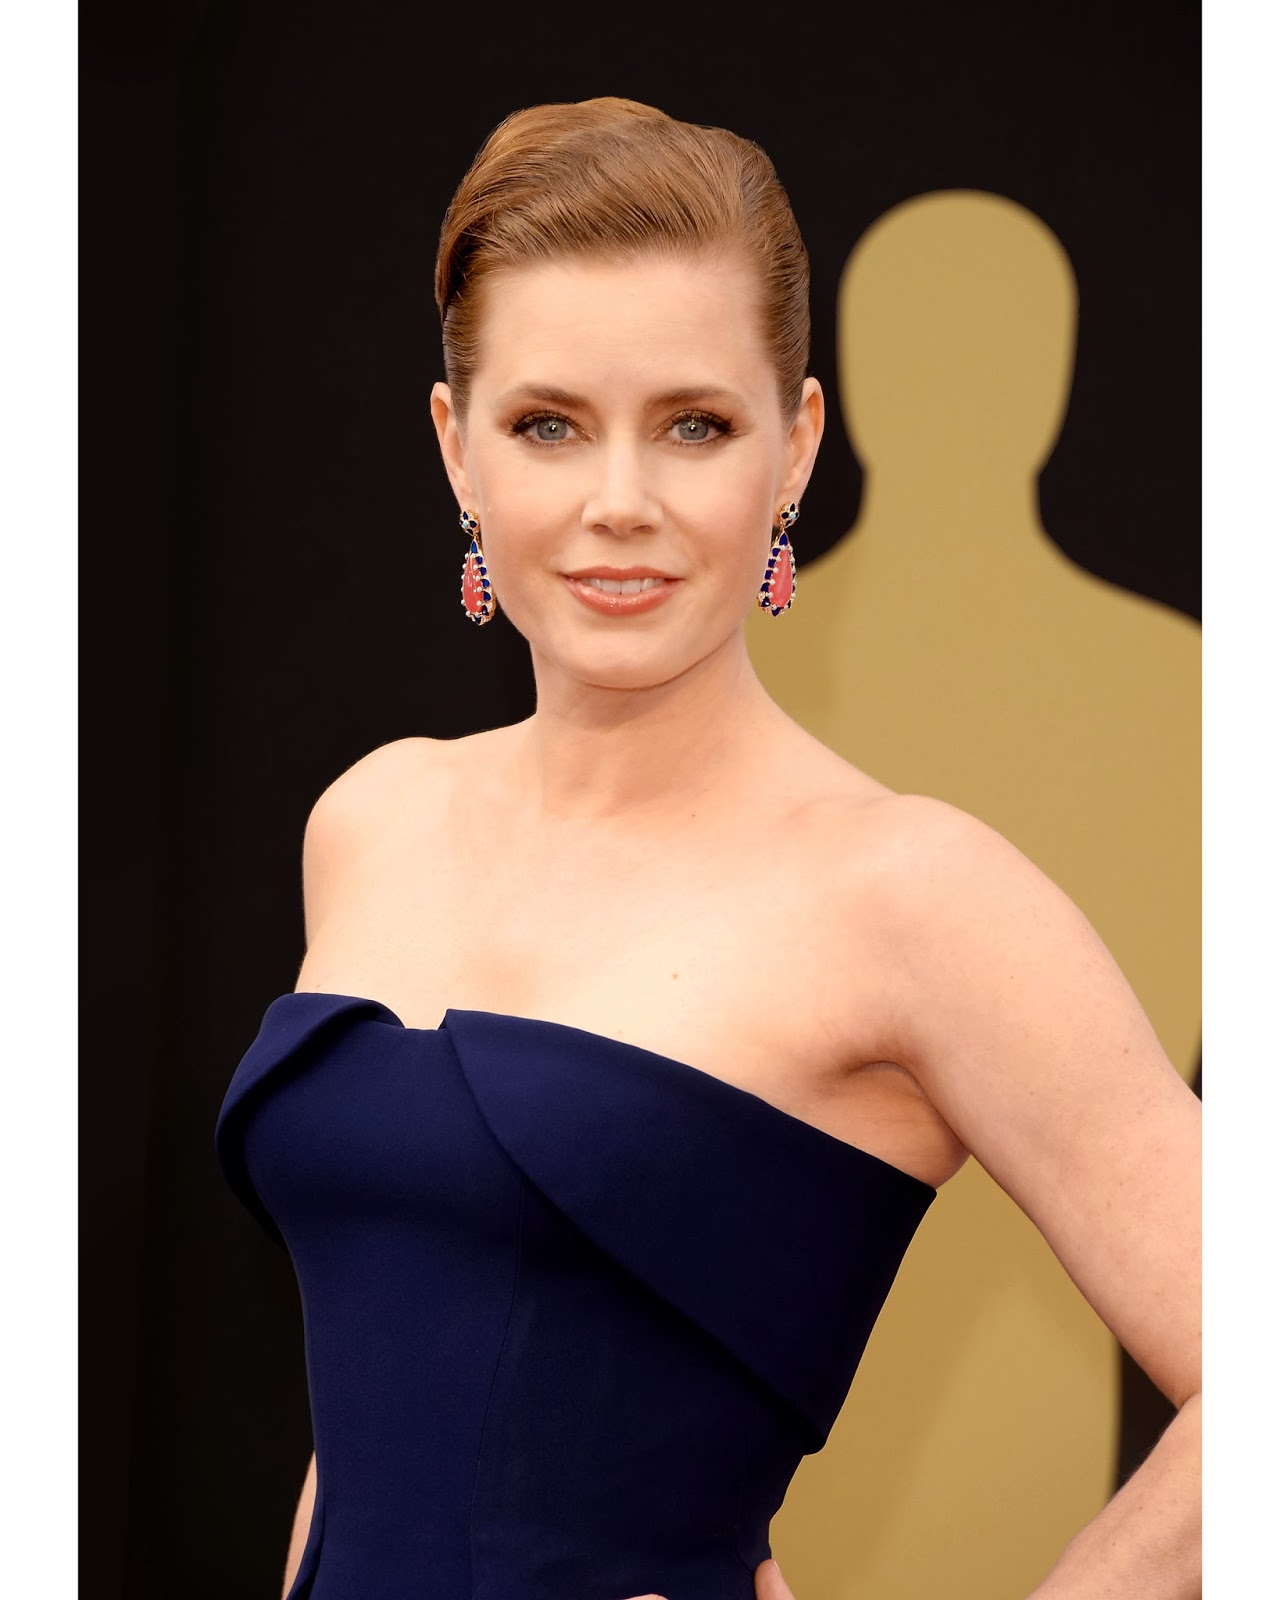 AMY ADAMS AT THE 86TH ACADEMY AWARDS